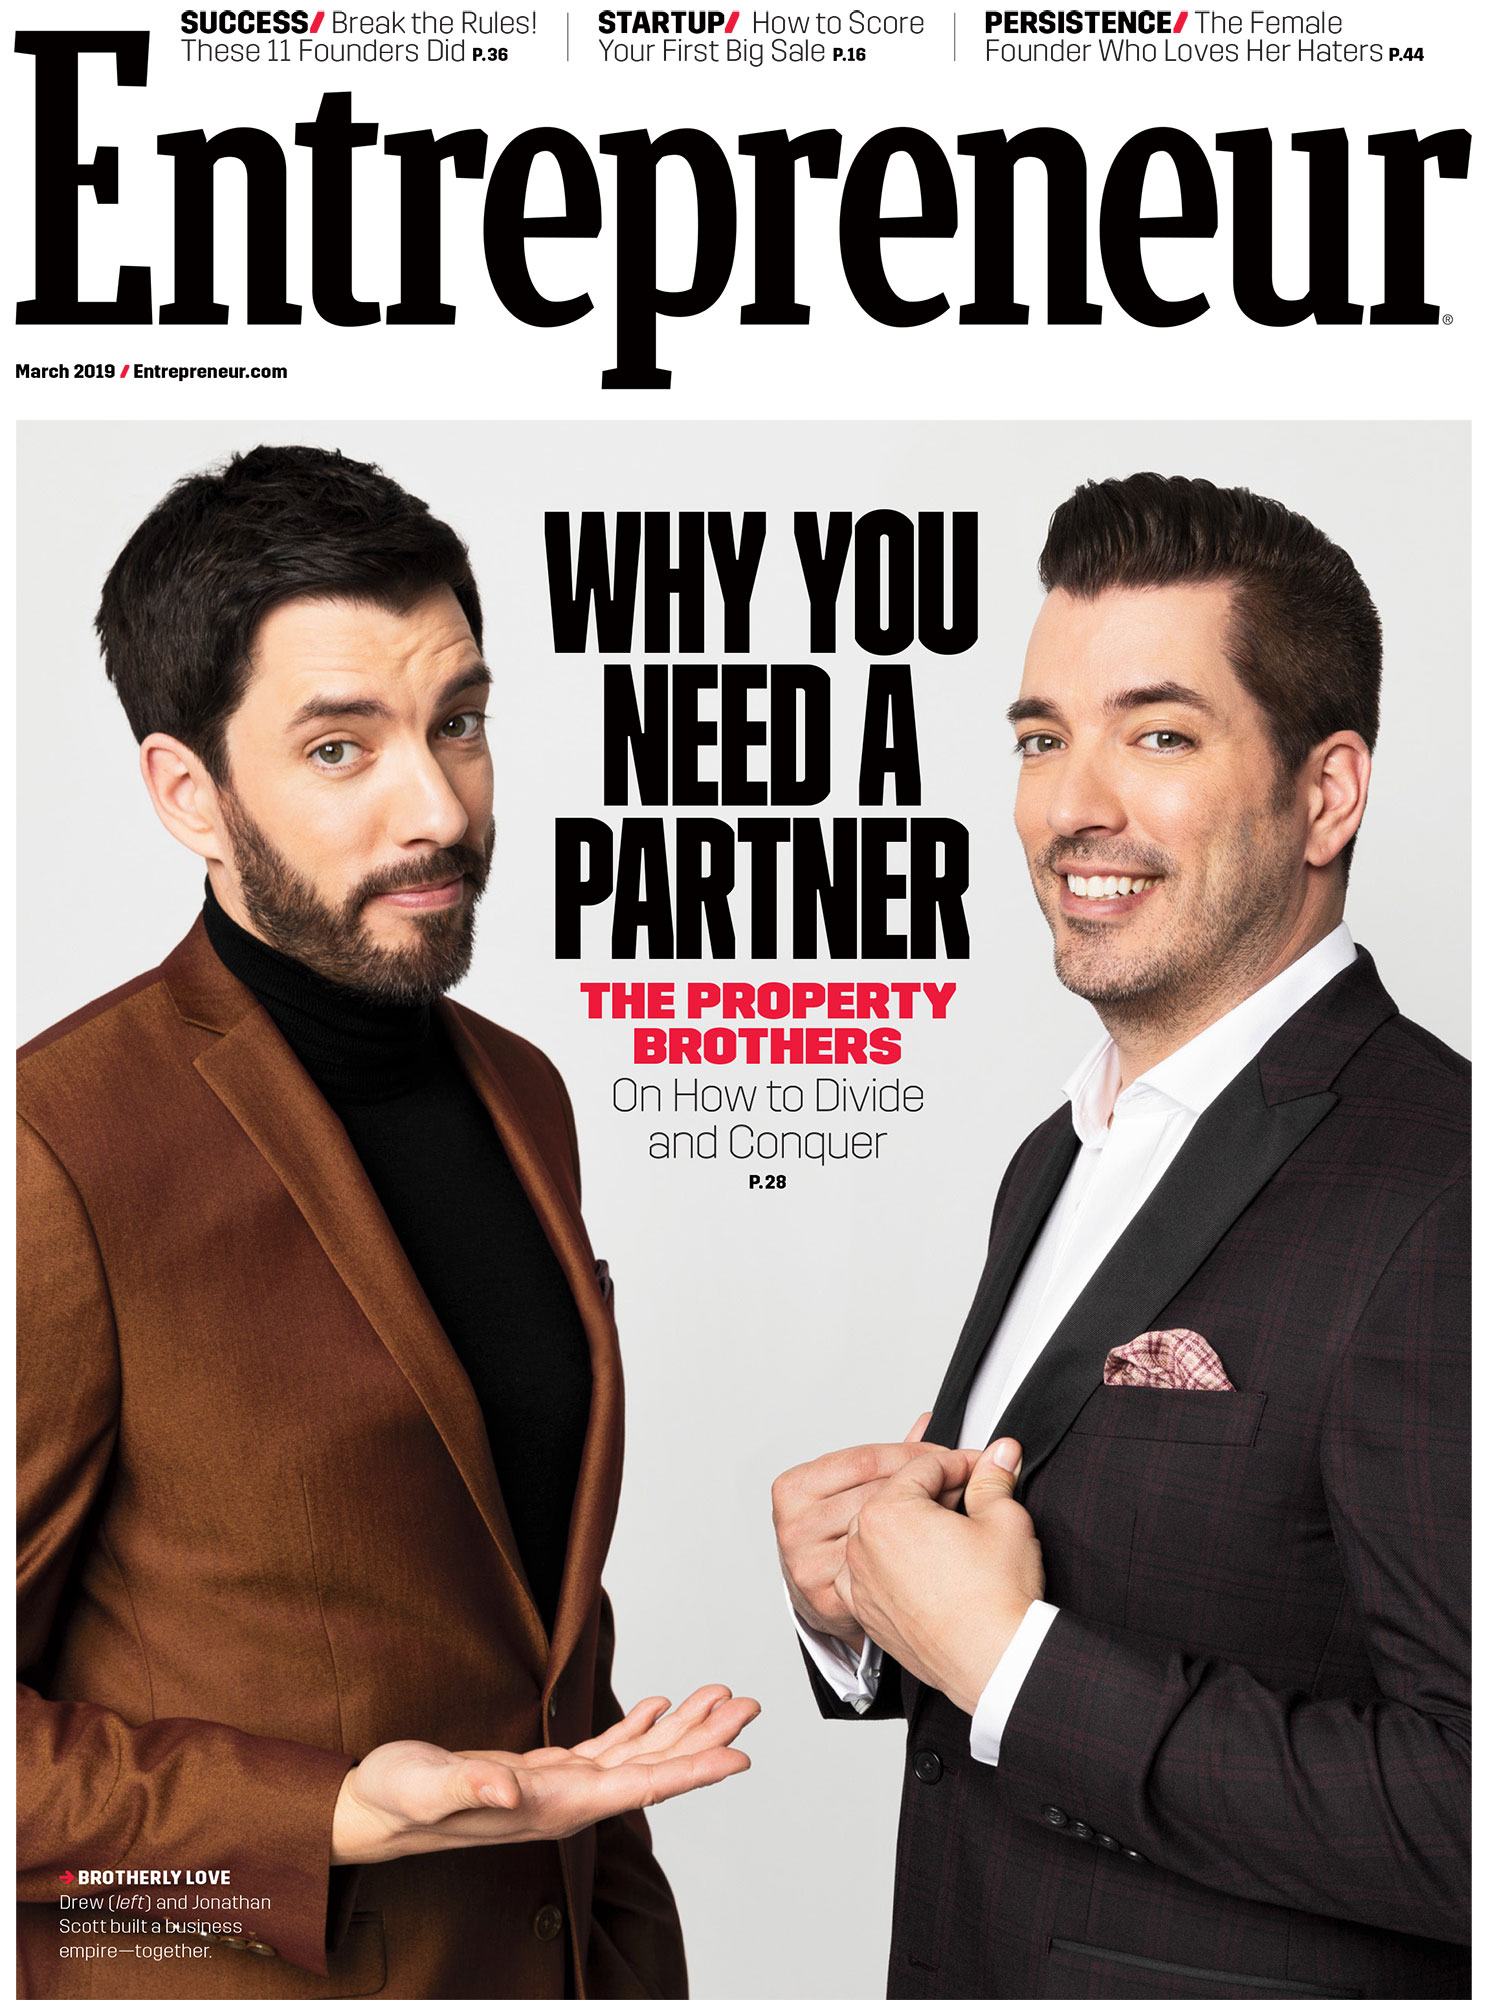 property-brothers-entrepreneur-magazine-cover